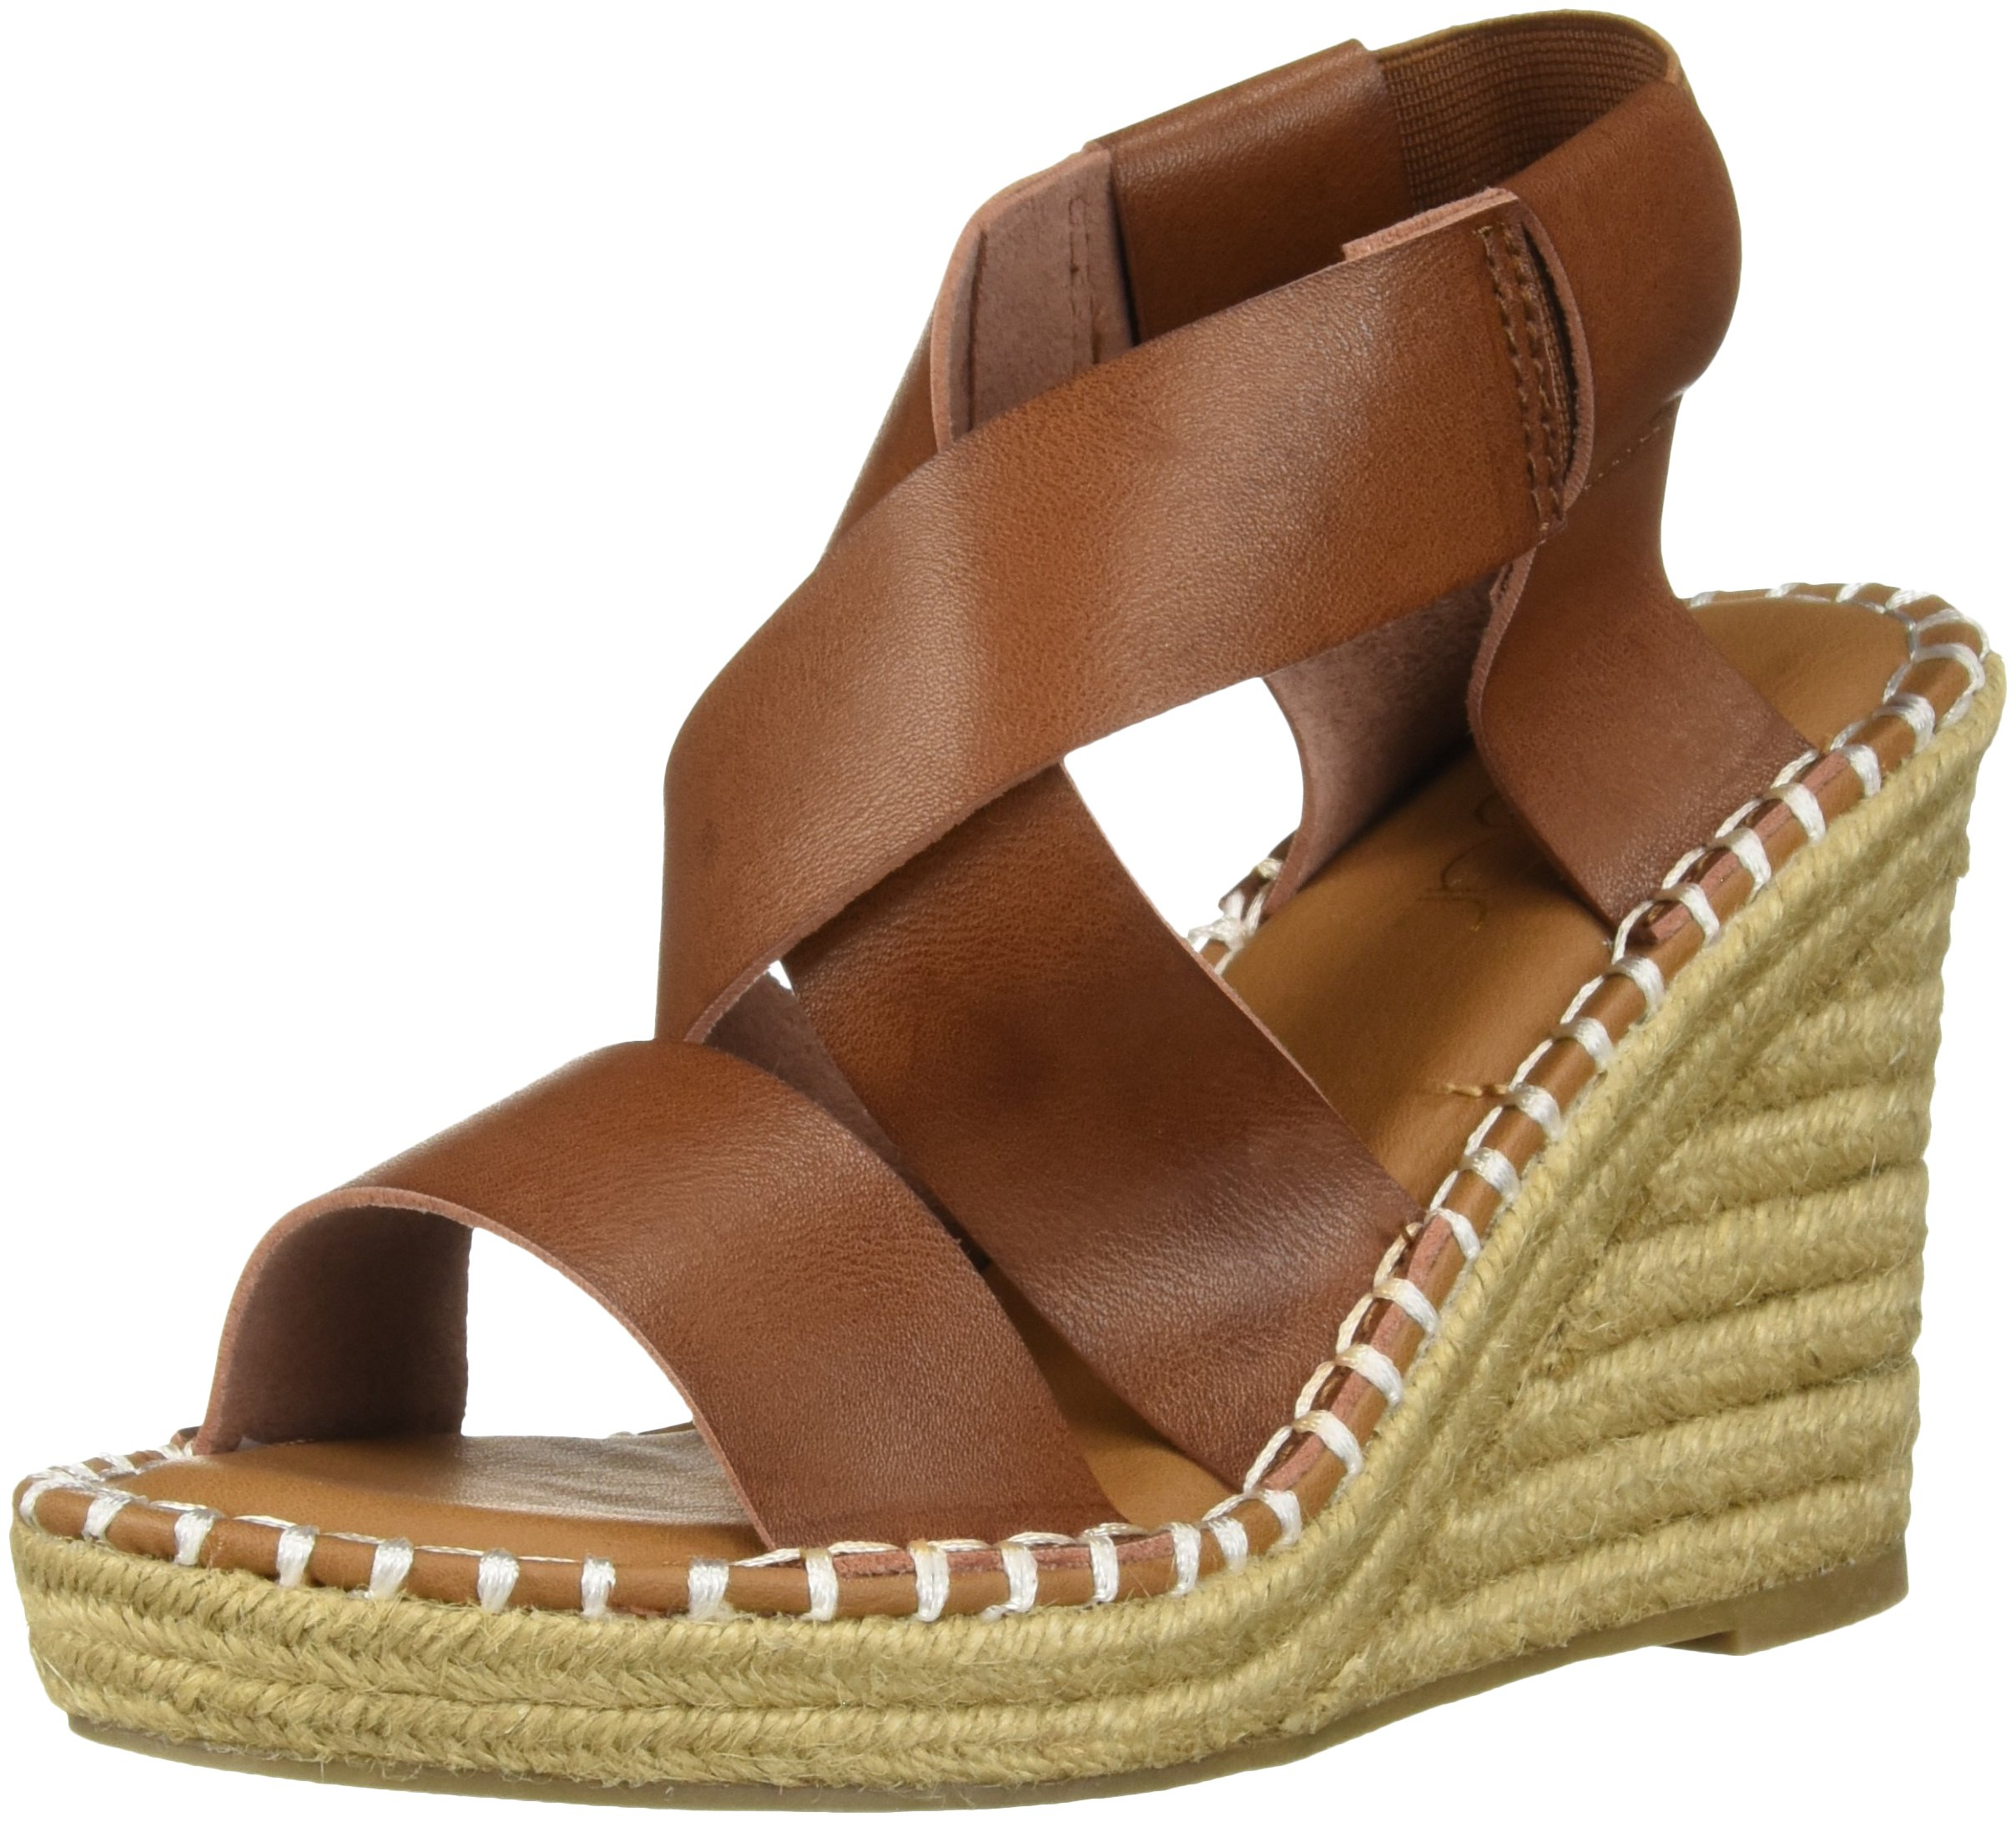 Sugar Women's SGR-Hopeful Espadrille Wedge Sandal, Dark Natural Burnish, 10 Medium US